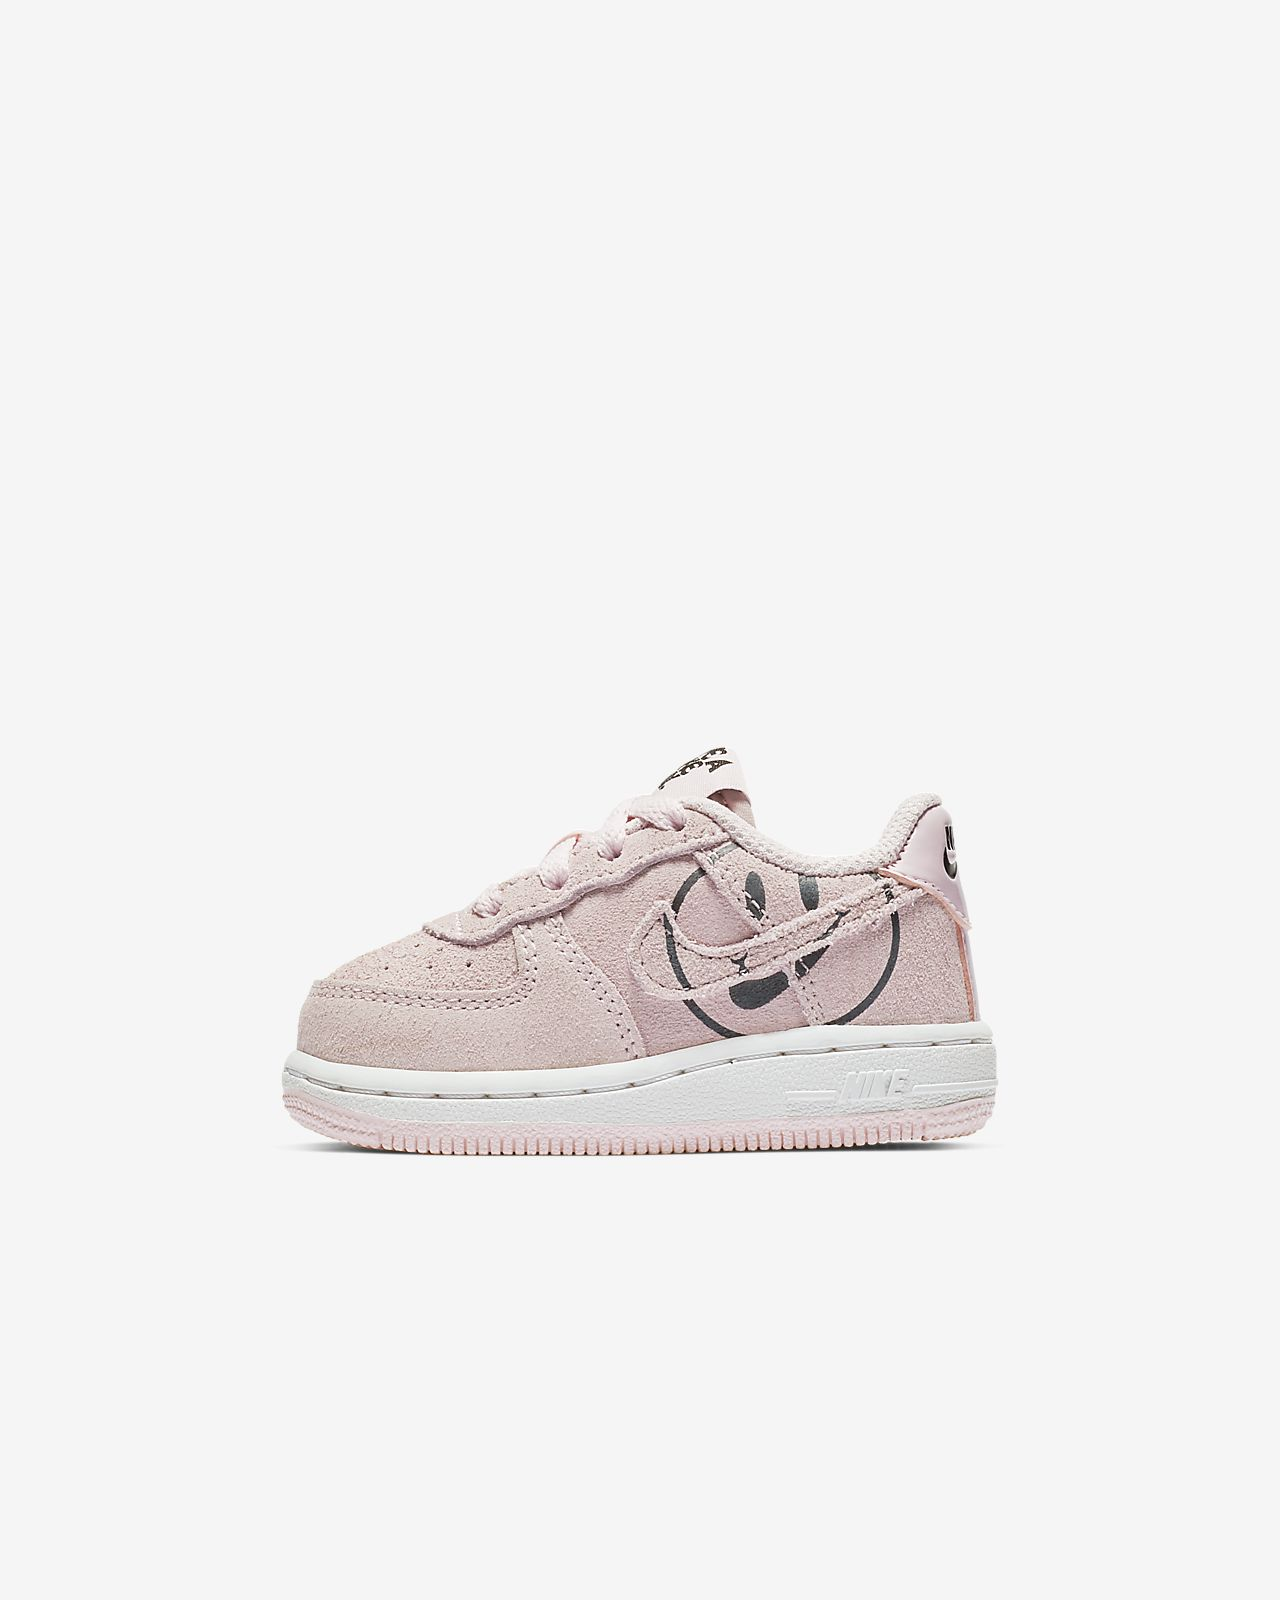 new styles a5305 f7515 ... Nike Force 1 LV8 2 Baby Toddler Shoe